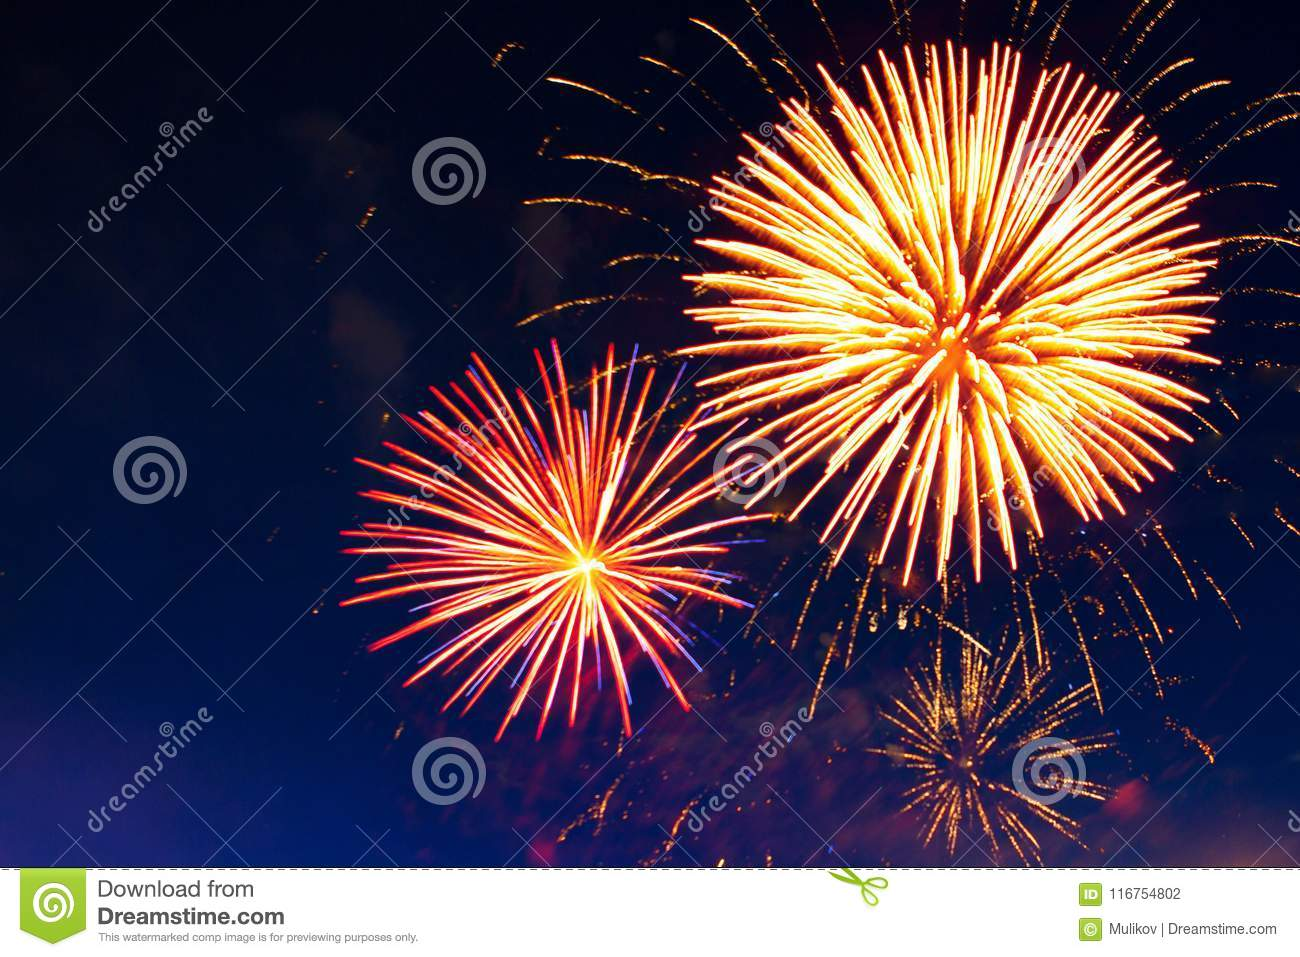 Celebration multicolored fireworks, copy space. 4 of July, 4th of July, Independence Day beautiful fireworks